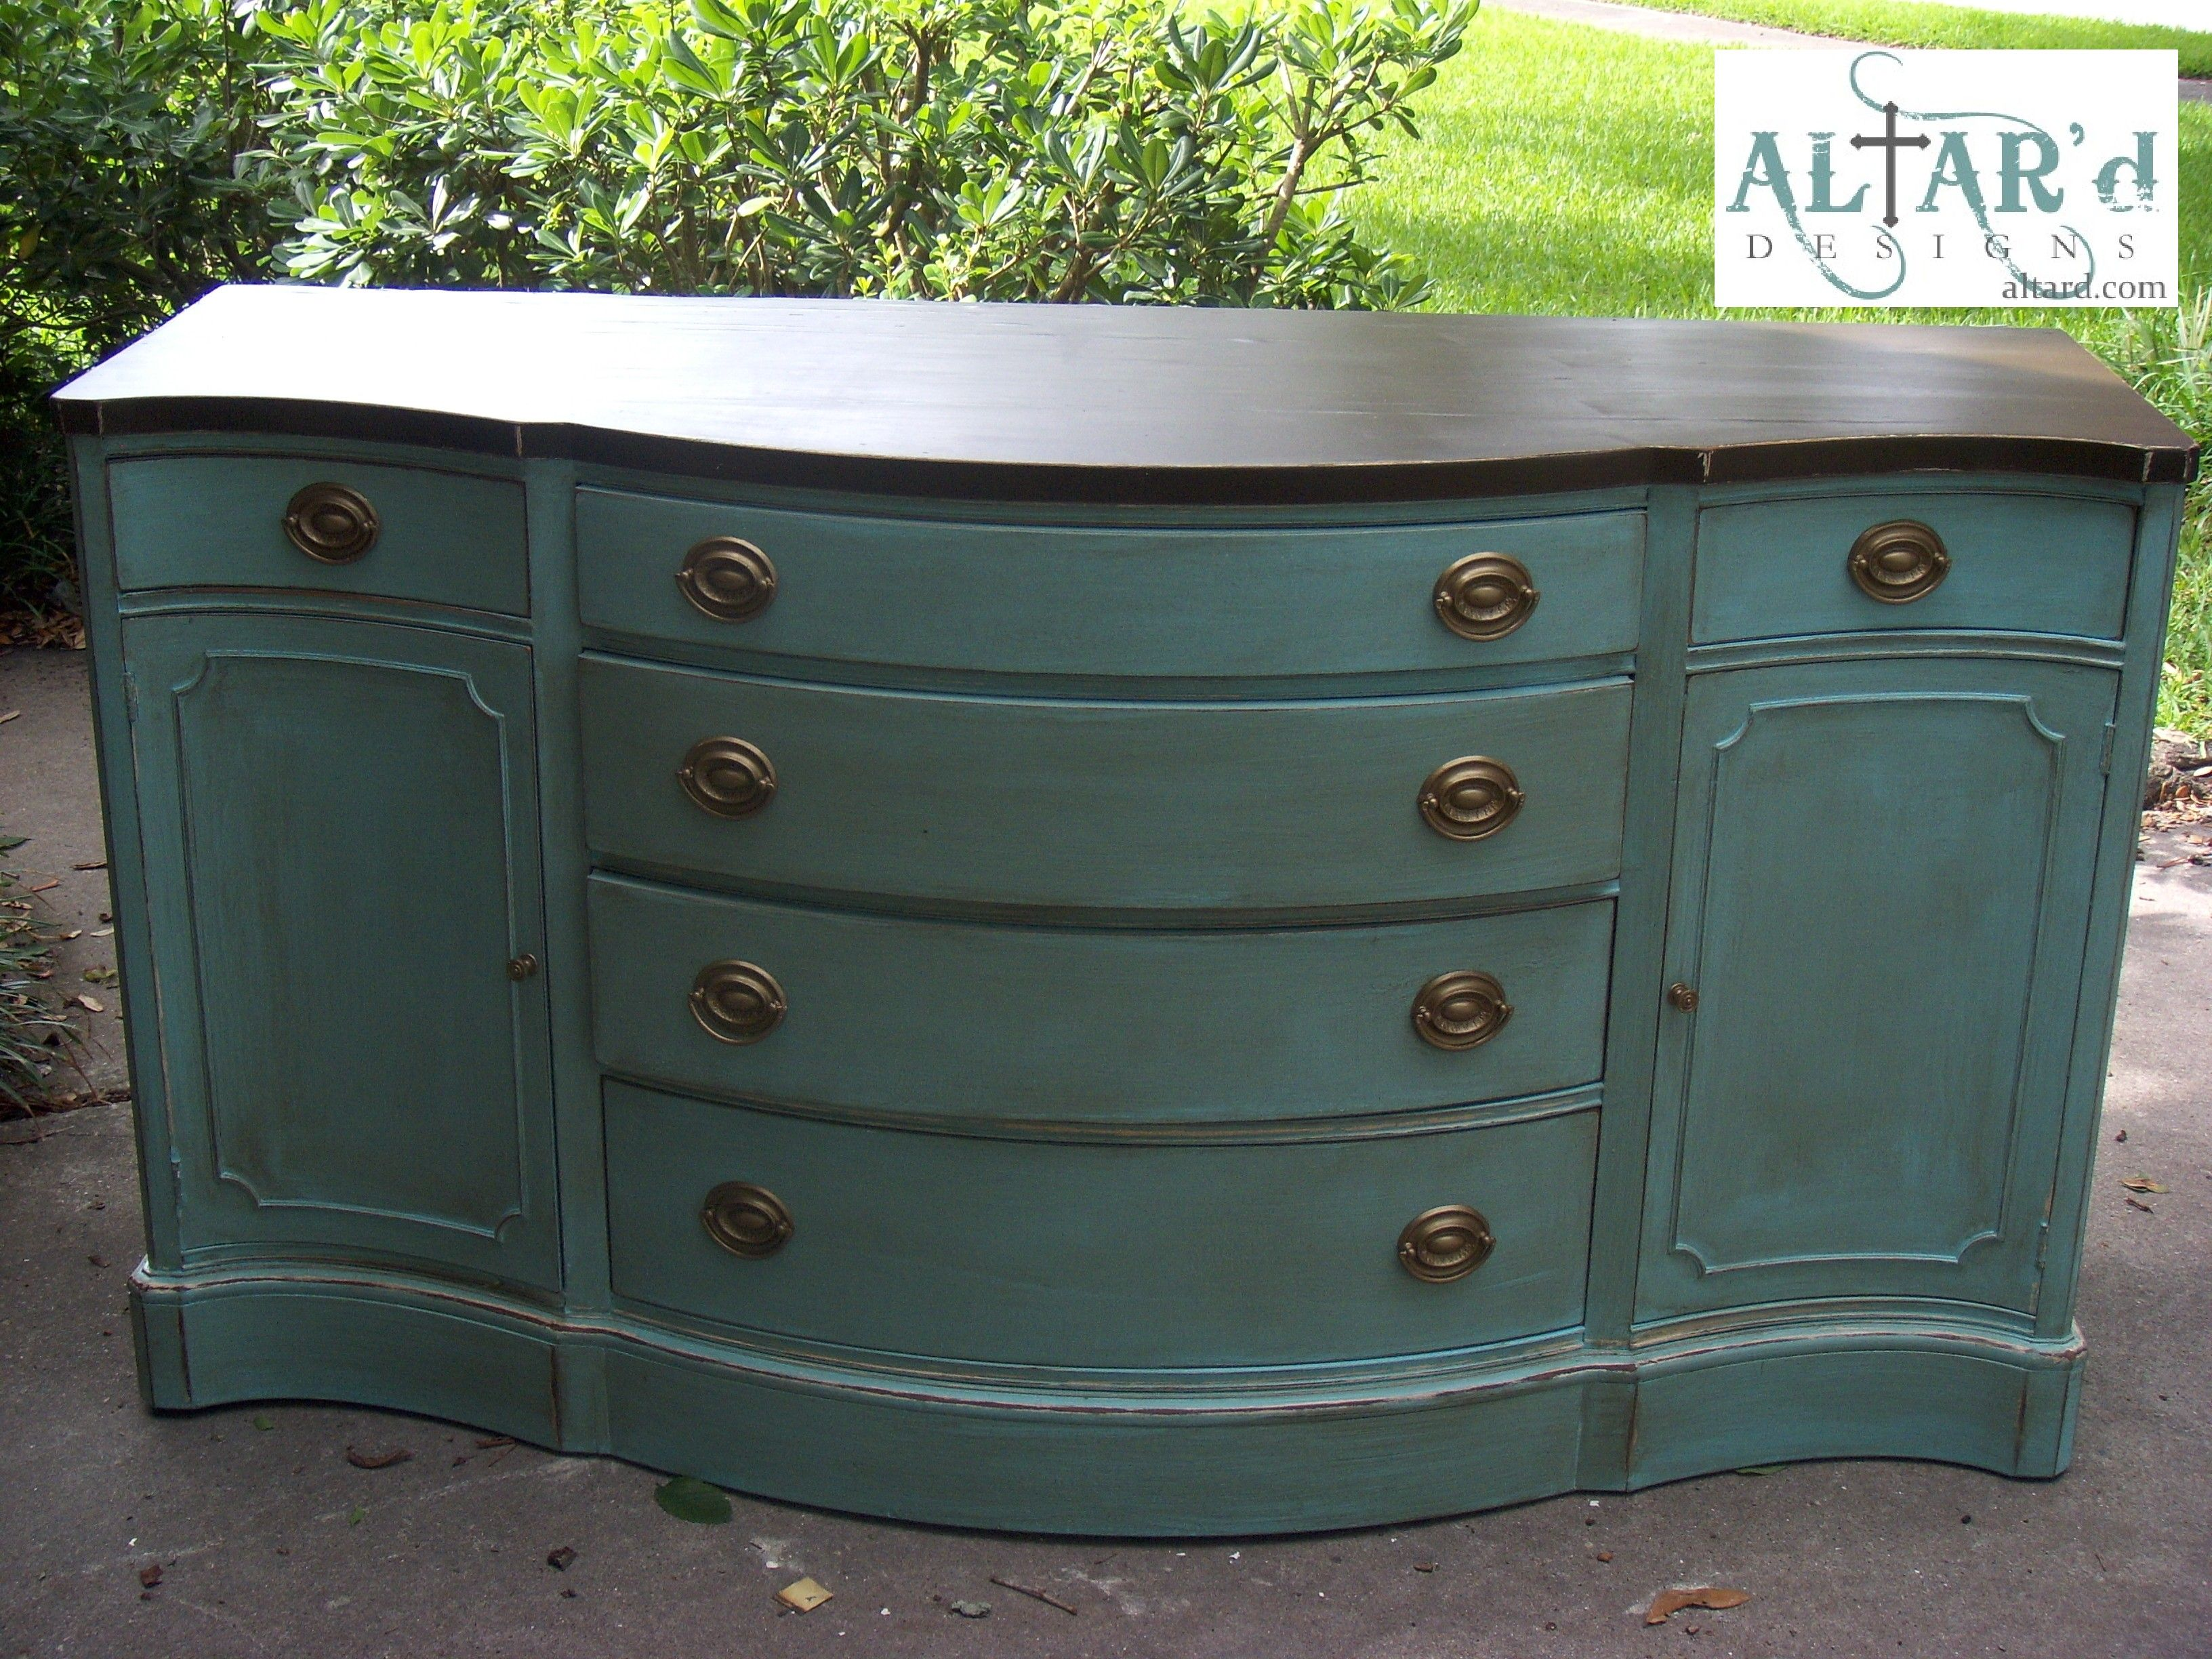 A Duncan Phyfe Style Buffet In Pale Aqua Distressed Glazed With An Espresso Top Dining Room